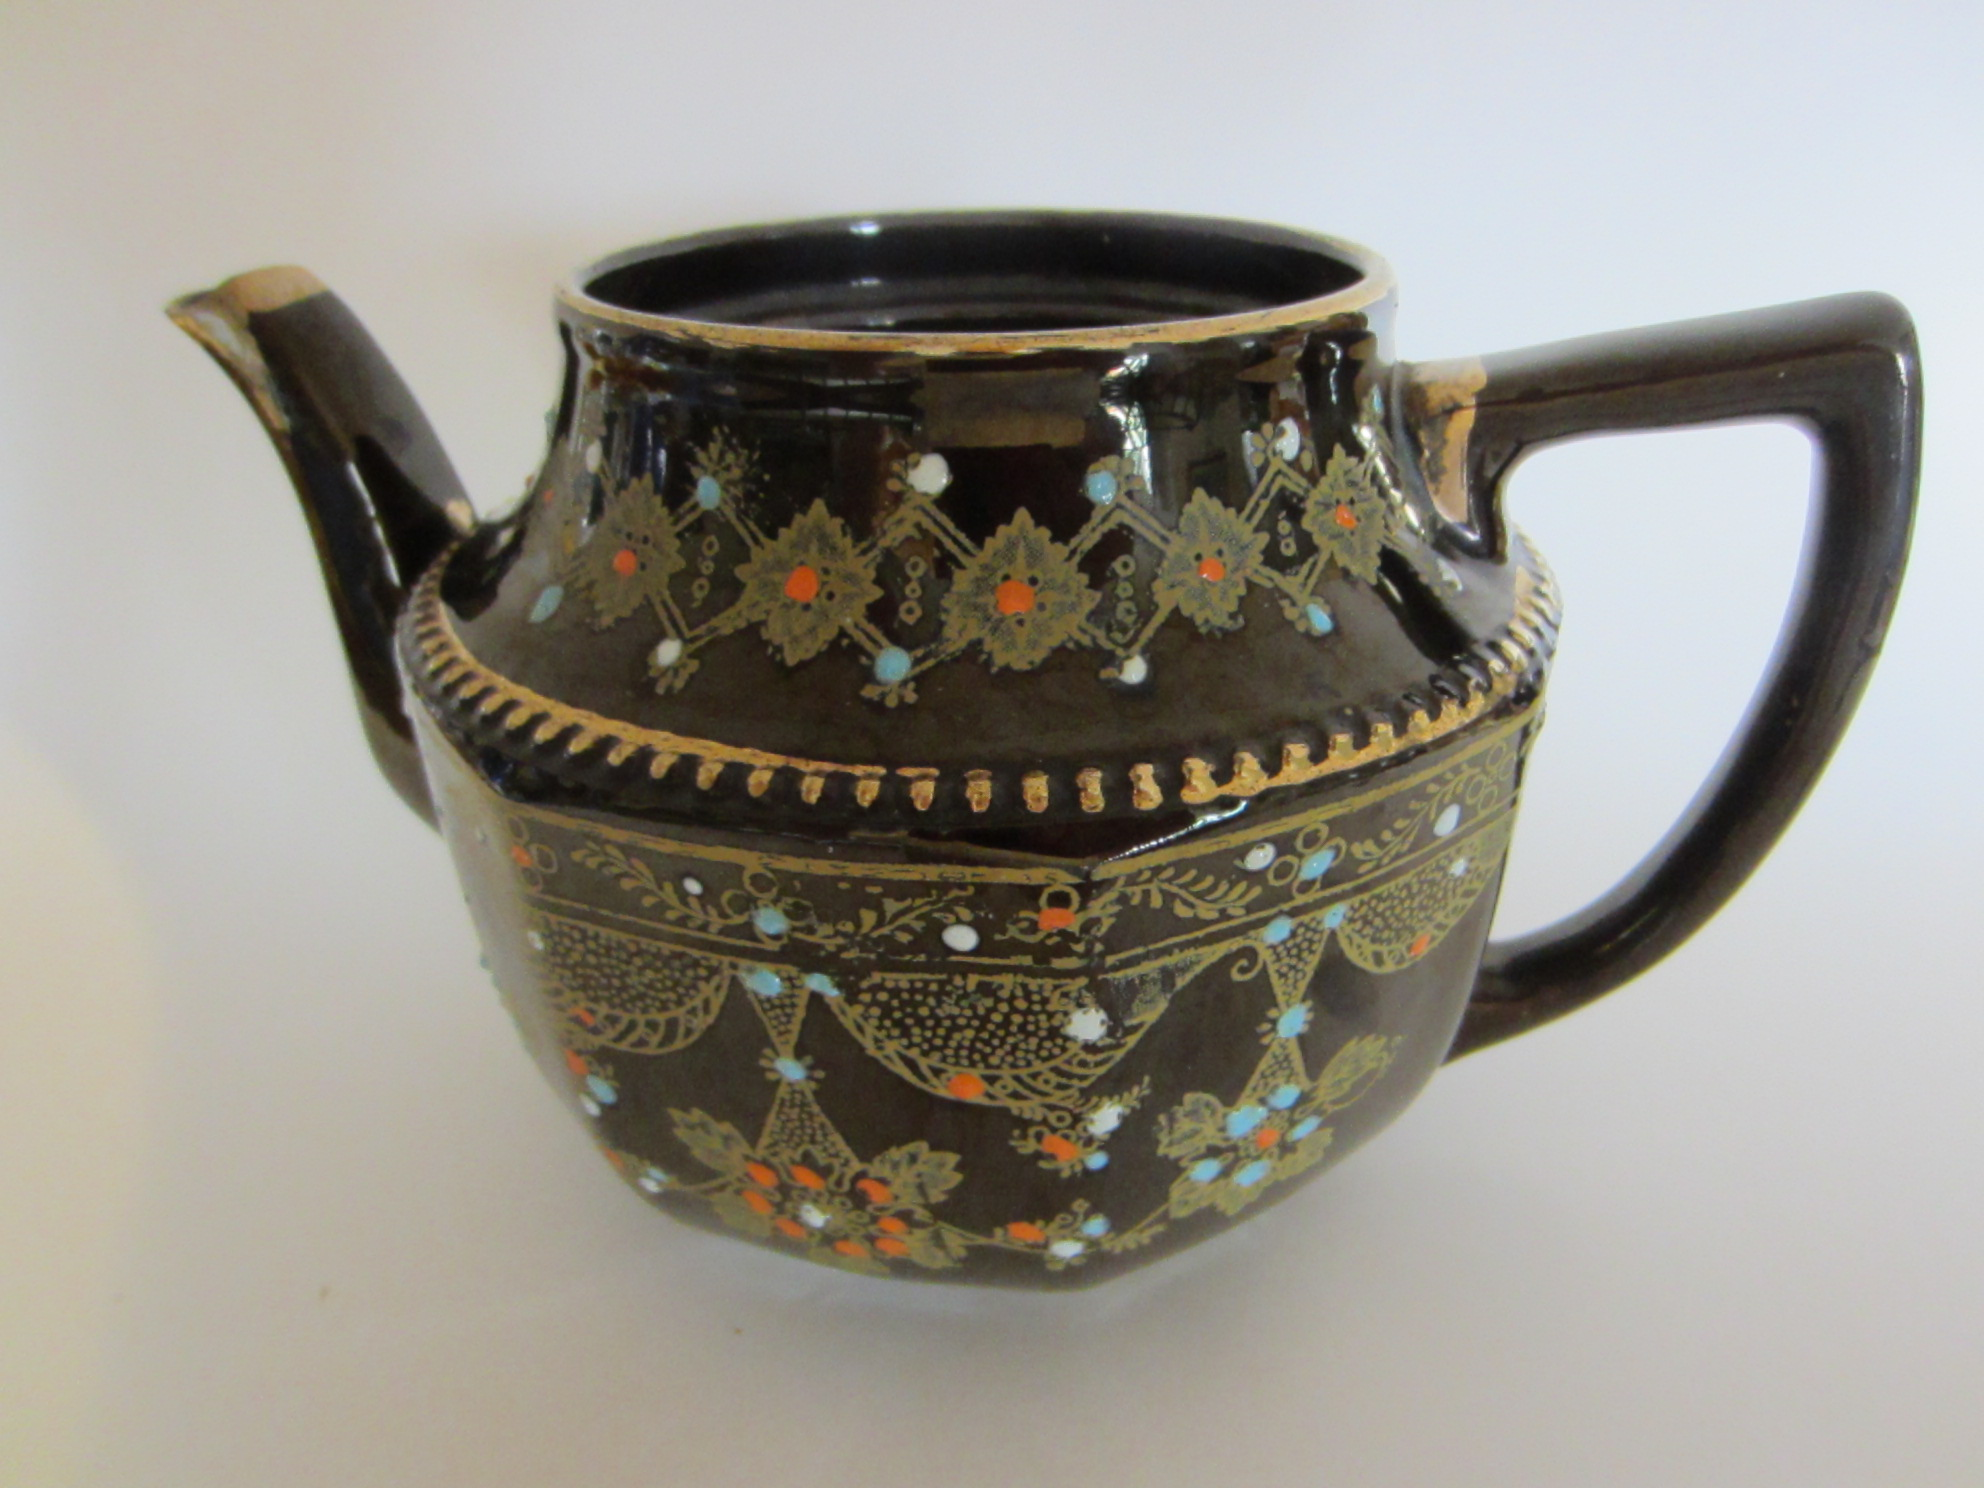 Elegant Luster Brown Ceramic Teapot Only For Decor With Idea Of Dried U0026 Or Fresh  Flowers And Leaves. Very Likely Made In Japan (occupied Timing) The Lid Is  No ...